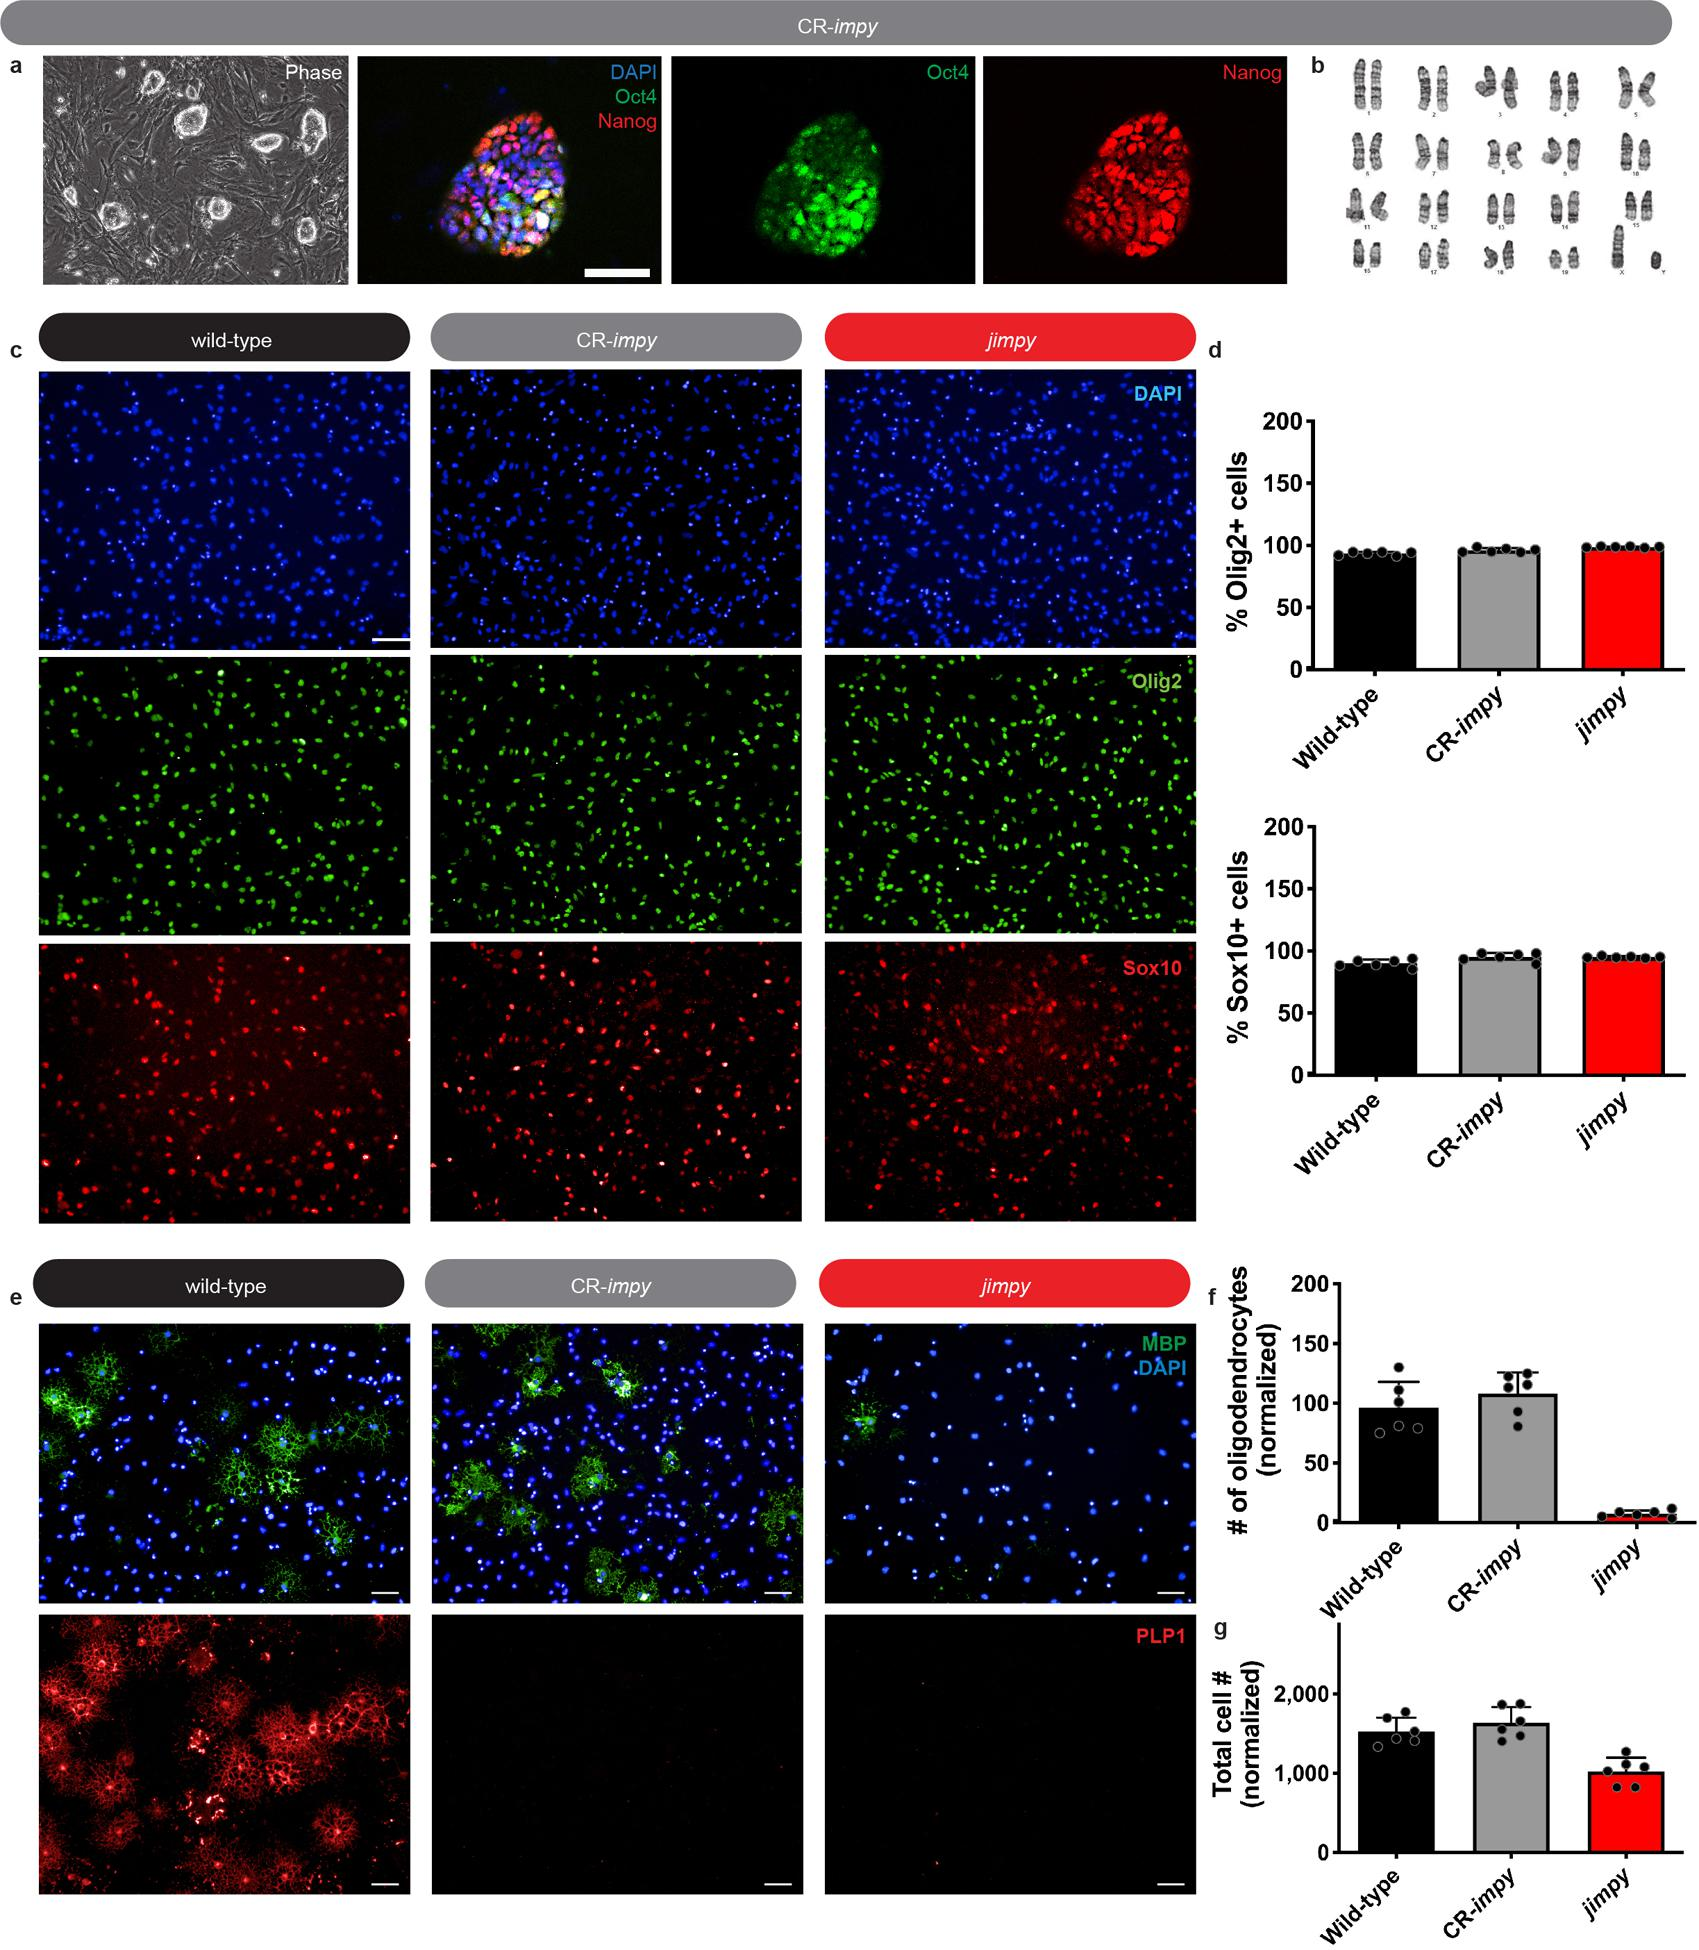 Plp1 suppression in jimpy OPCs rescues survival of differentiating oligodendrocytes in vitro . a , Phase and immunocytochemistry images of Oct4 + and Nanog + iPSCs, along with DAPI + nuclei and b , normal karyotype of a CR- impy iPSC line used to generate OPCs. Scale bar, 50μm. c , Immunocytochemistry images showing Olig2 + and Sox10 + cells in OPC cultures, along with DAPI + nuclei, derived from iPSCs. Scale bar, 100μm. d , Percentage of Sox10 + and Olig2 + cells in OPC cultures. e , Immunocytochemistry images of MBP + and PLP + oligodendrocytes. f-g , Quantification of ( f ) MBP + oligodendrocytes and ( g ) total cell number (DAPI + nuclei) from iPSC-derived OPCs differentiated in vitro for 3 days. Scale bar, 50μm. Technical replicates (individual wells) for a single cell line per genotype indicated by black circles. Graph bars indicate mean ± standard deviation.